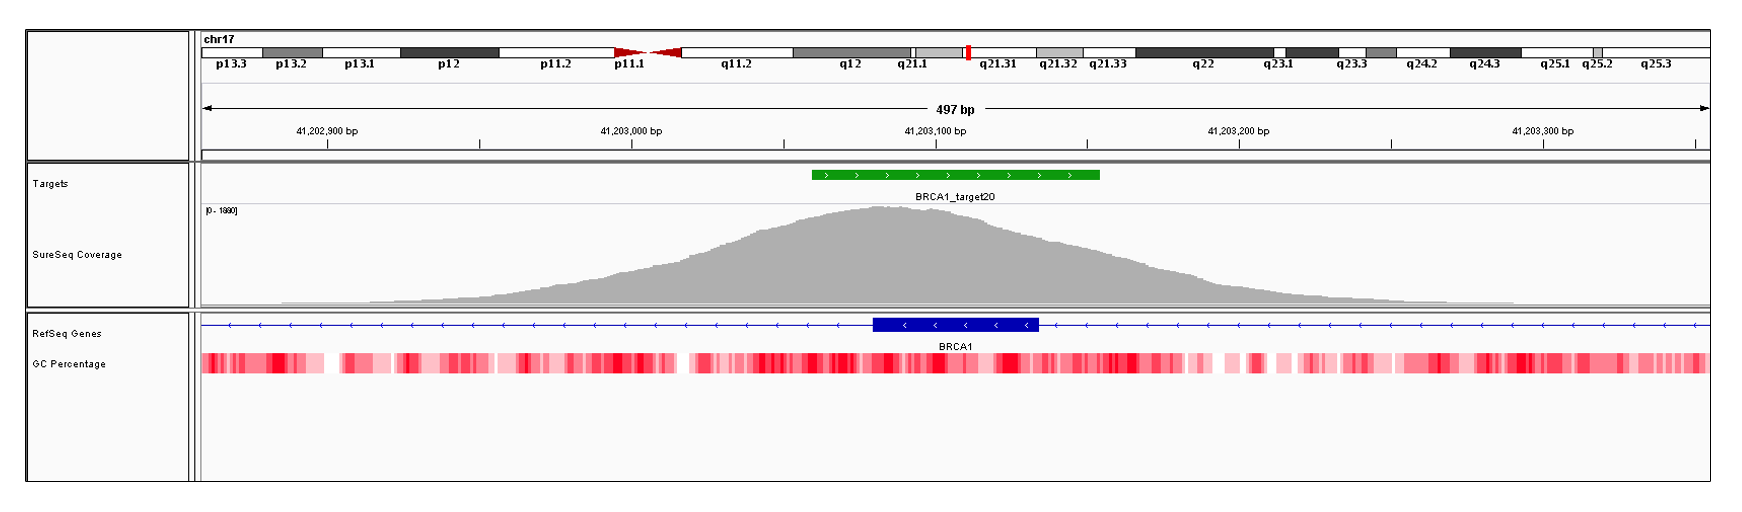 BRCA1 Exon 20 (hg19 chr17:41203080-41203134). Depth of coverage per base (grey). Targeted region (green). Gene coding region as defined by RefSeq (blue). GC percentage (red). Image